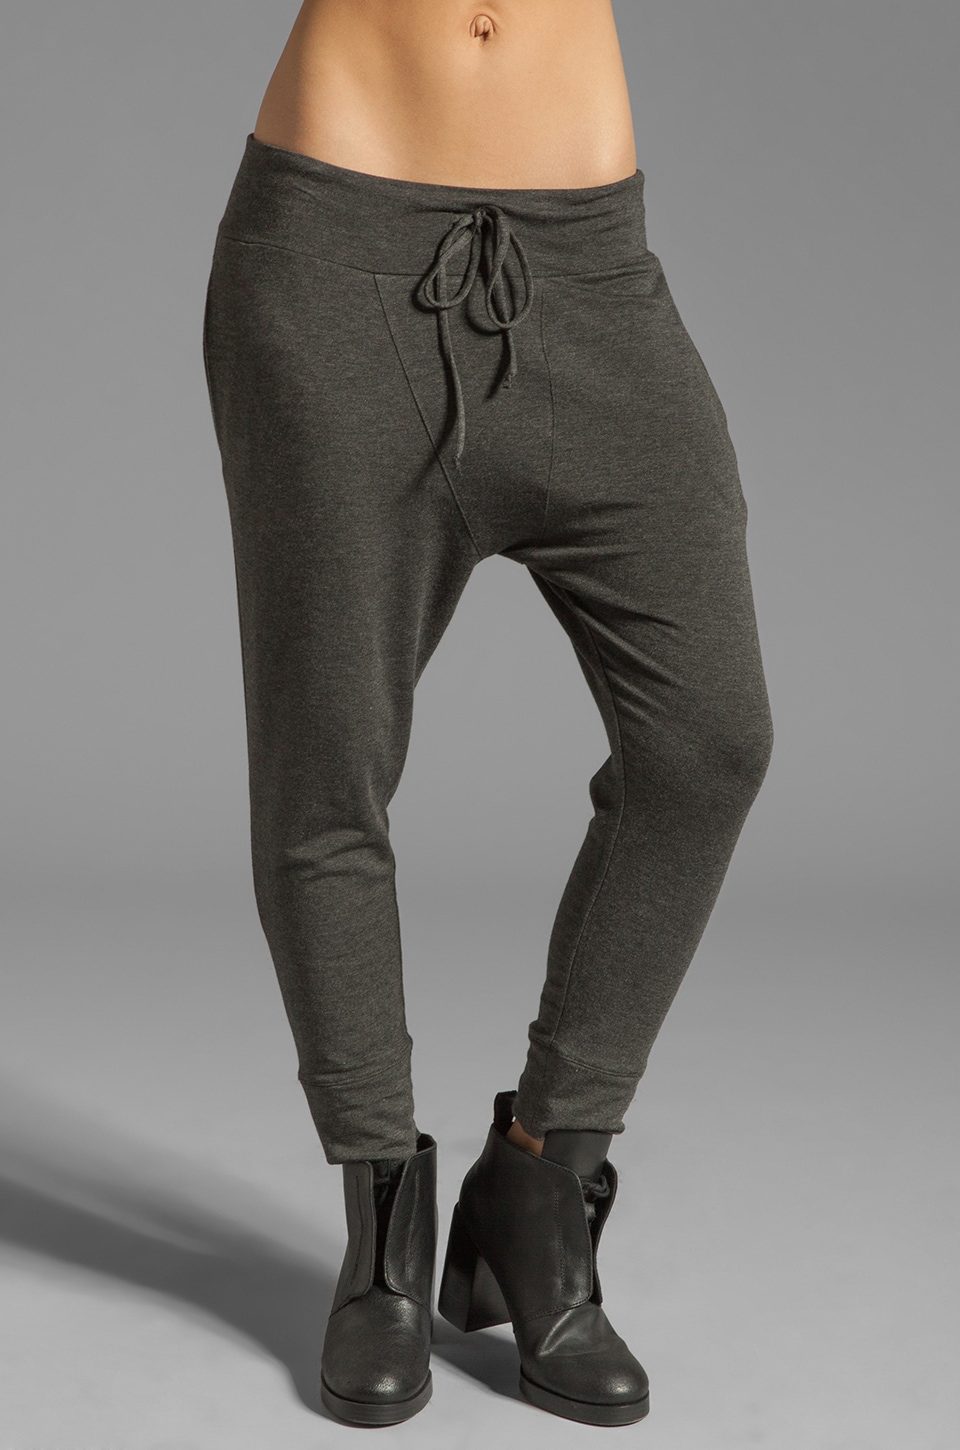 Riller & Fount Kathy Jersey Lounge Pant in Stud